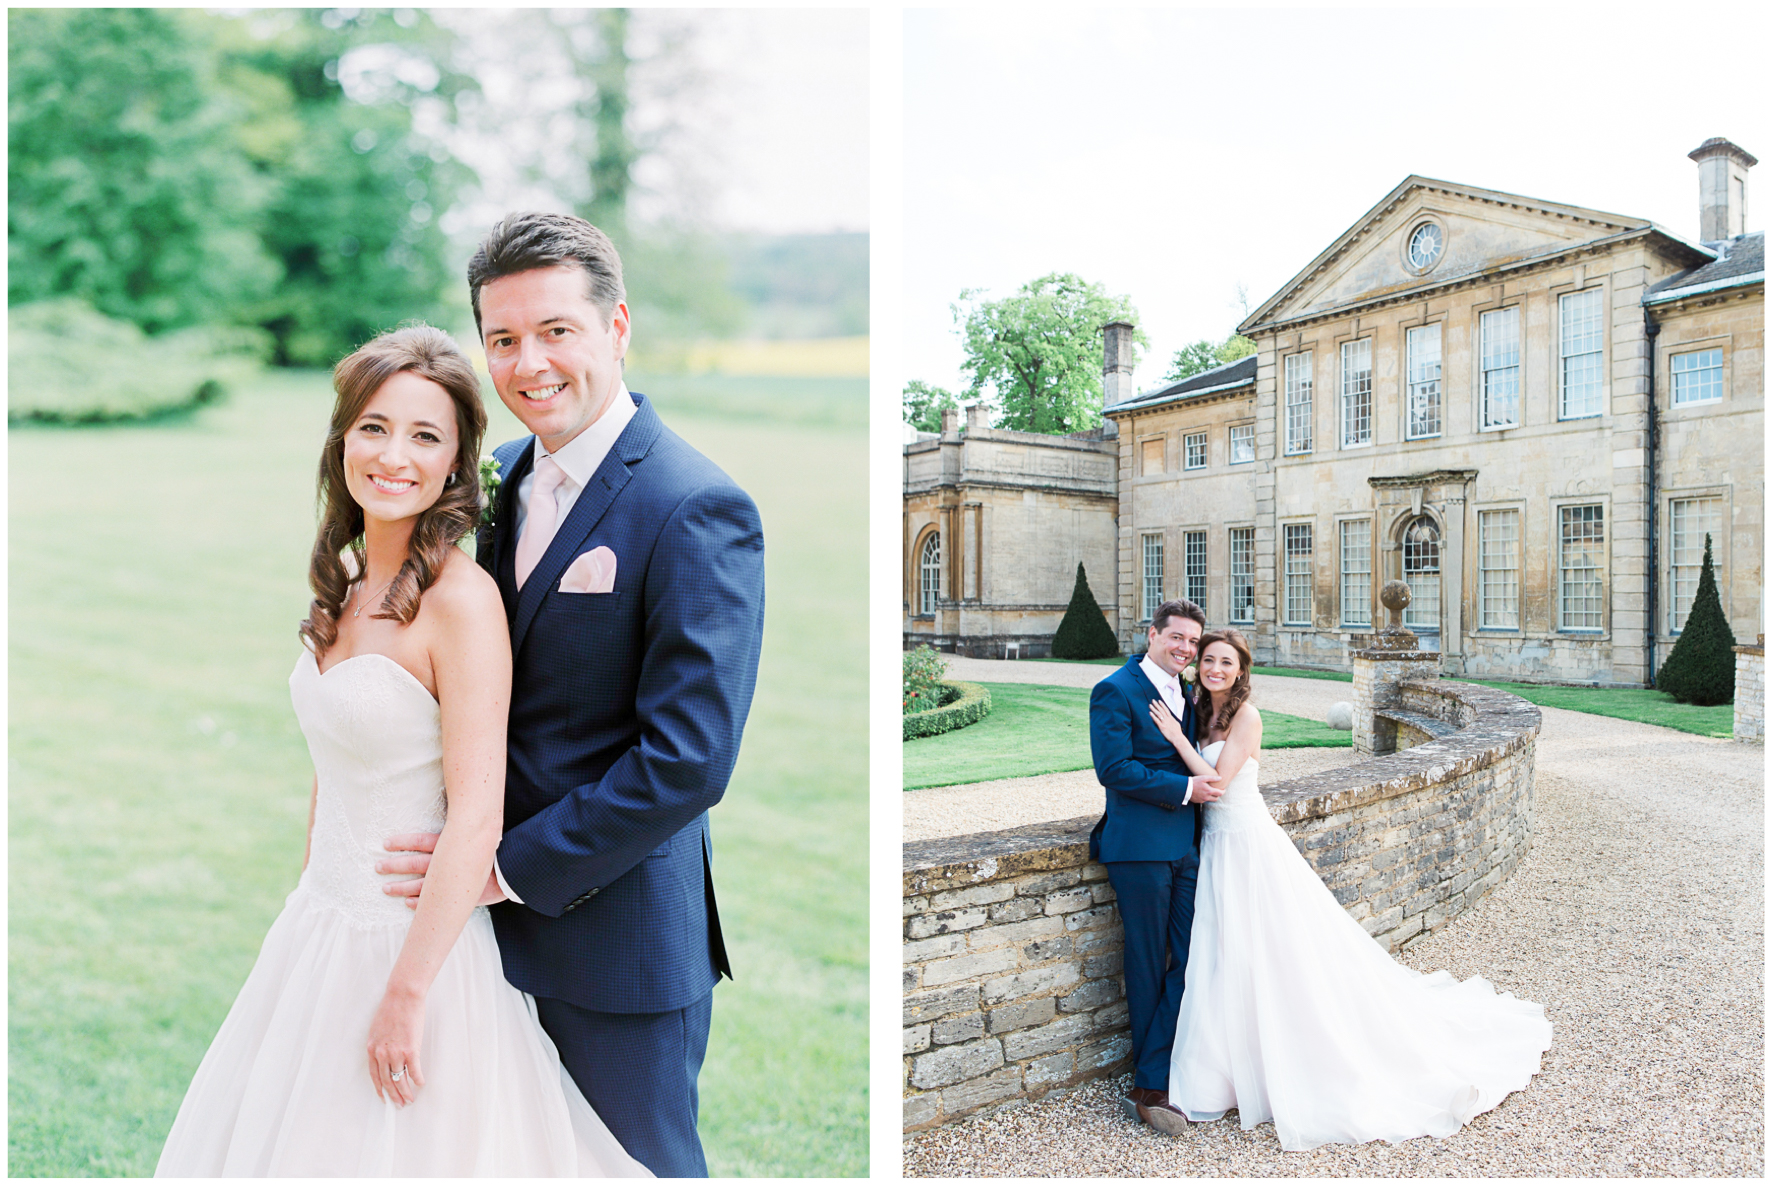 Lucy Davenport Photography, Aynhoe Park, bride and groom